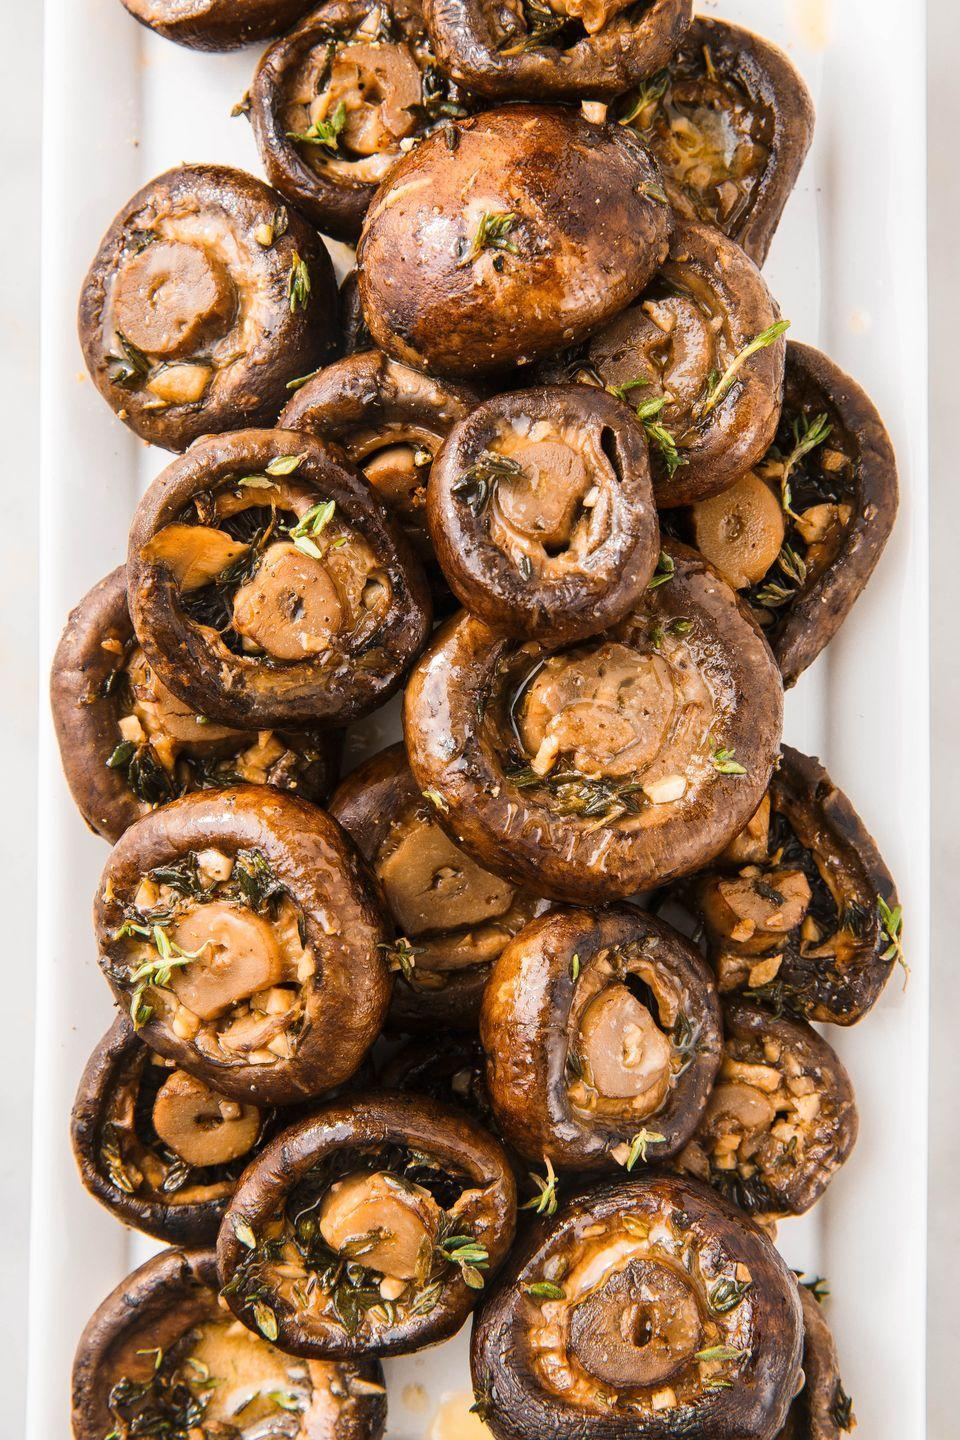 "<p>These are INSANELY addictive!</p><p>Get the recipe from <a href=""https://www.delish.com/cooking/recipe-ideas/a24520074/garlic-butter-mushrooms-recipe/"" rel=""nofollow noopener"" target=""_blank"" data-ylk=""slk:Delish"" class=""link rapid-noclick-resp"">Delish</a>.</p>"